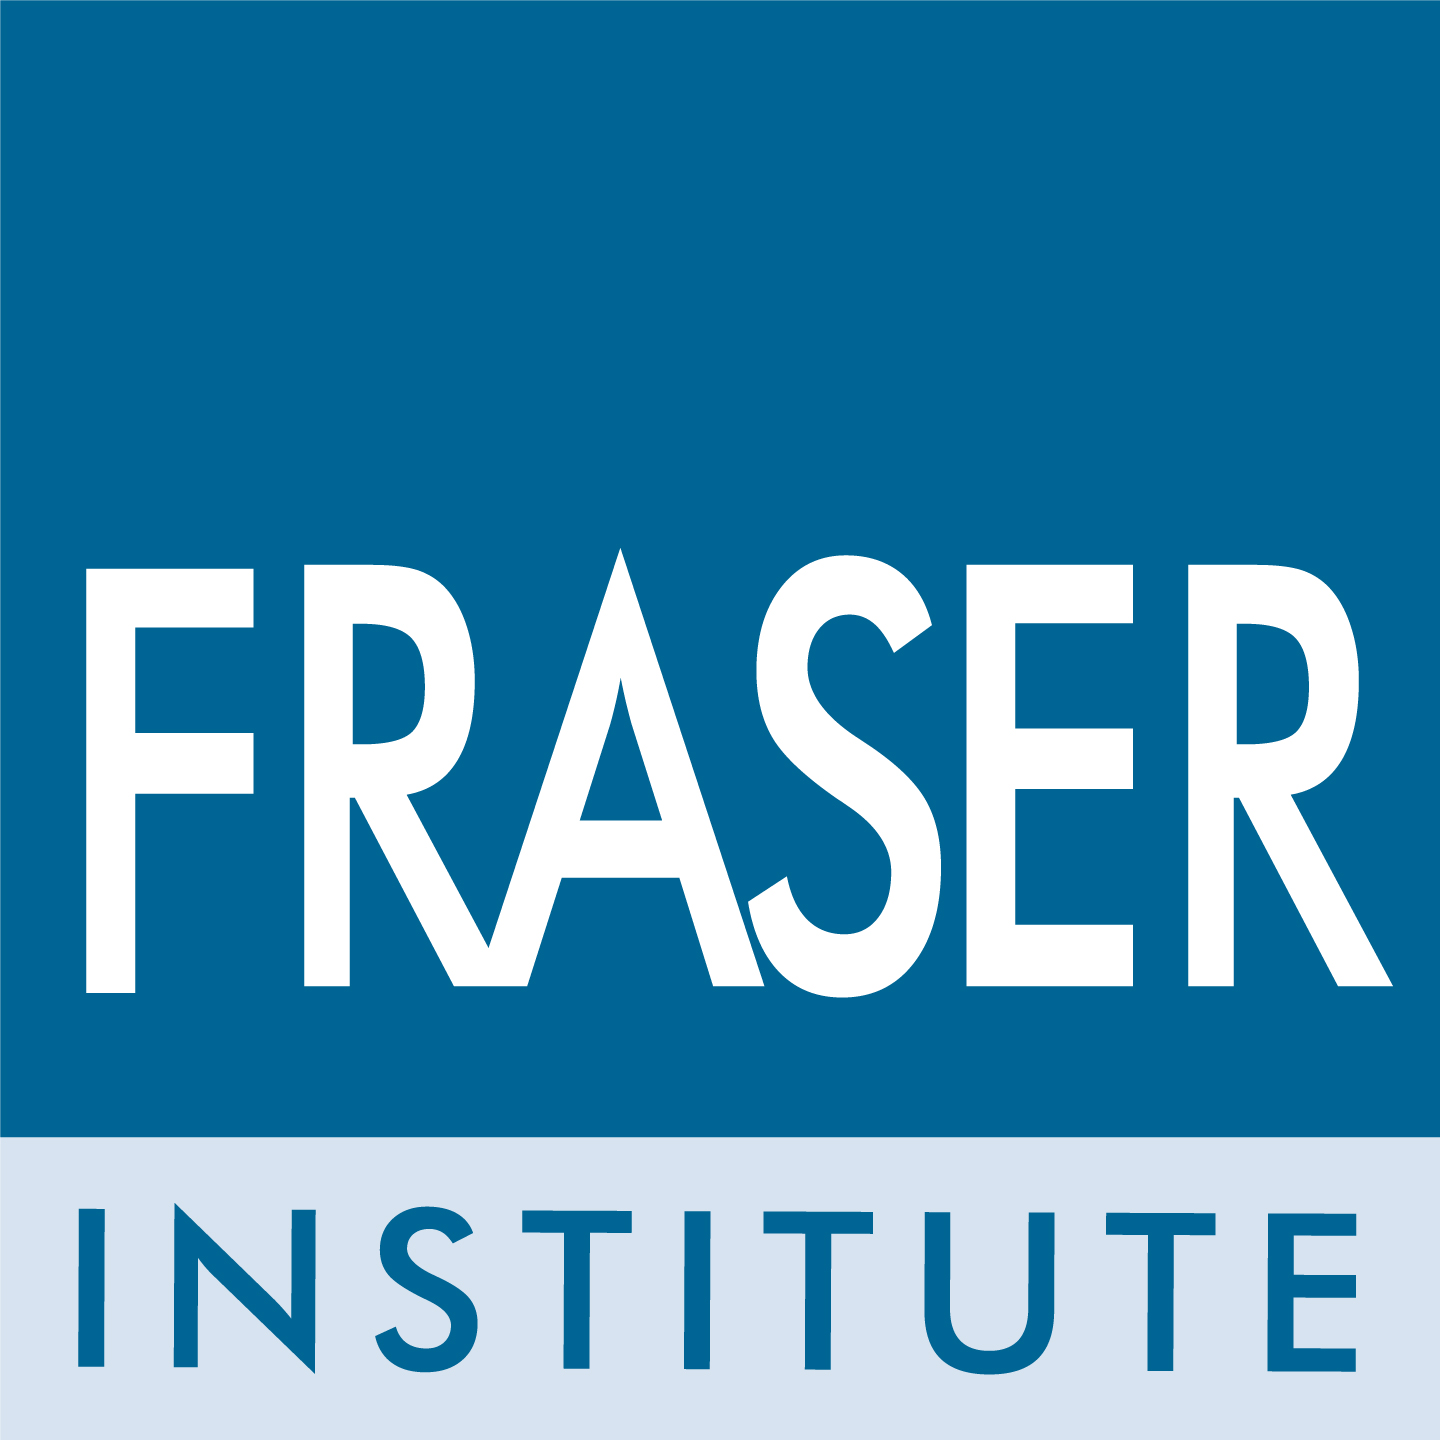 Fraser Institute News Release: Alberta's deficit reduction takes longer and reduces spending less than previous reform-minded governments